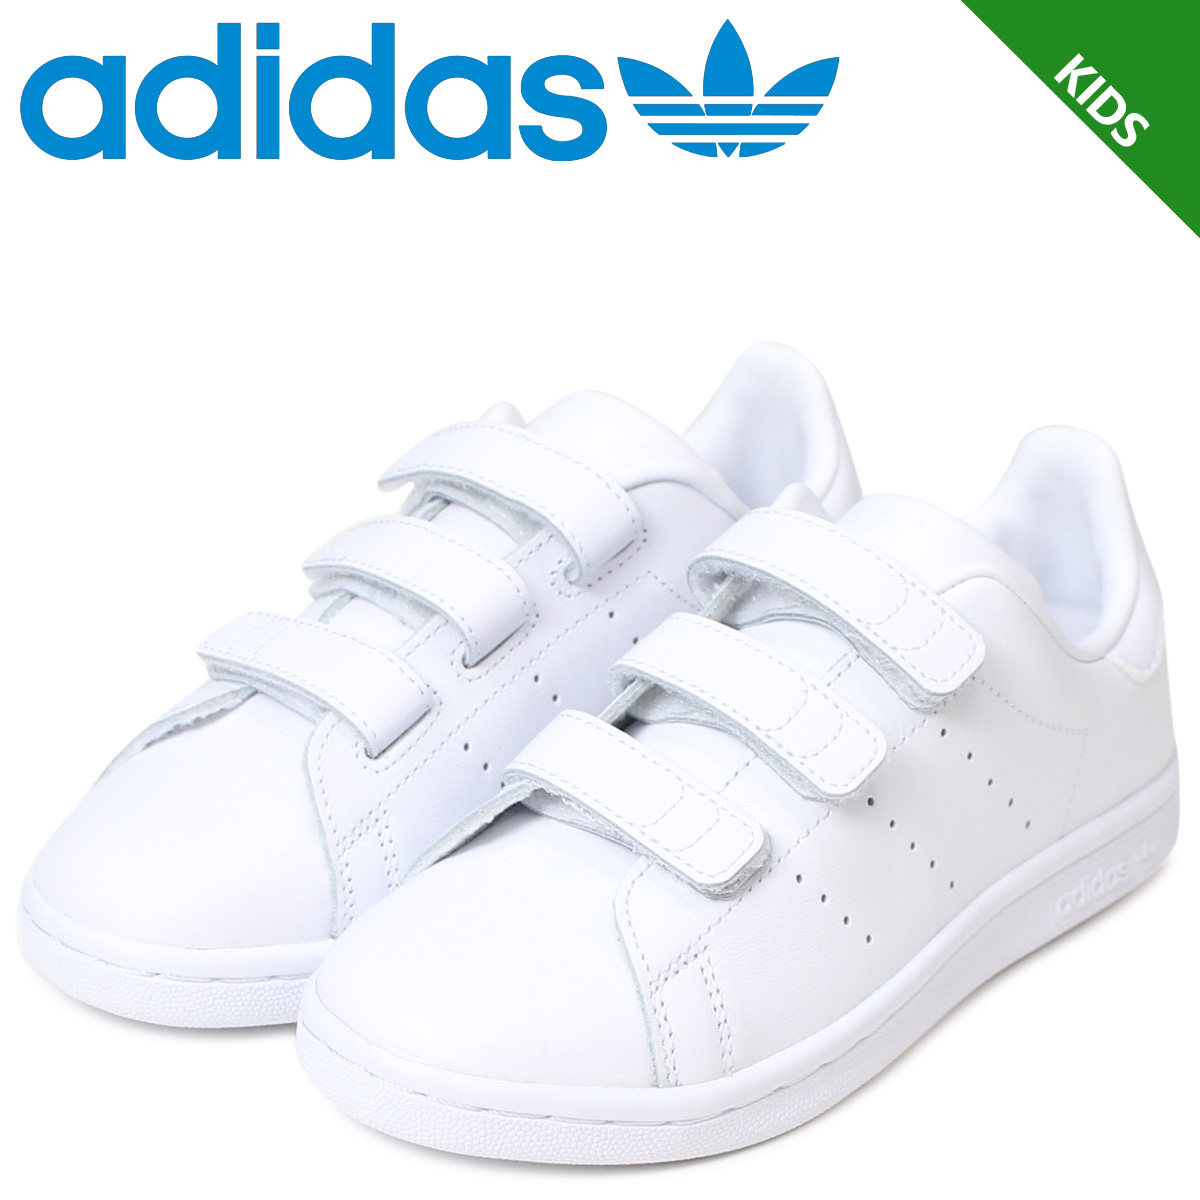 Smith Sneakers Sneak Online Stan ShopAdidas Kids Originals TluF1JcK3